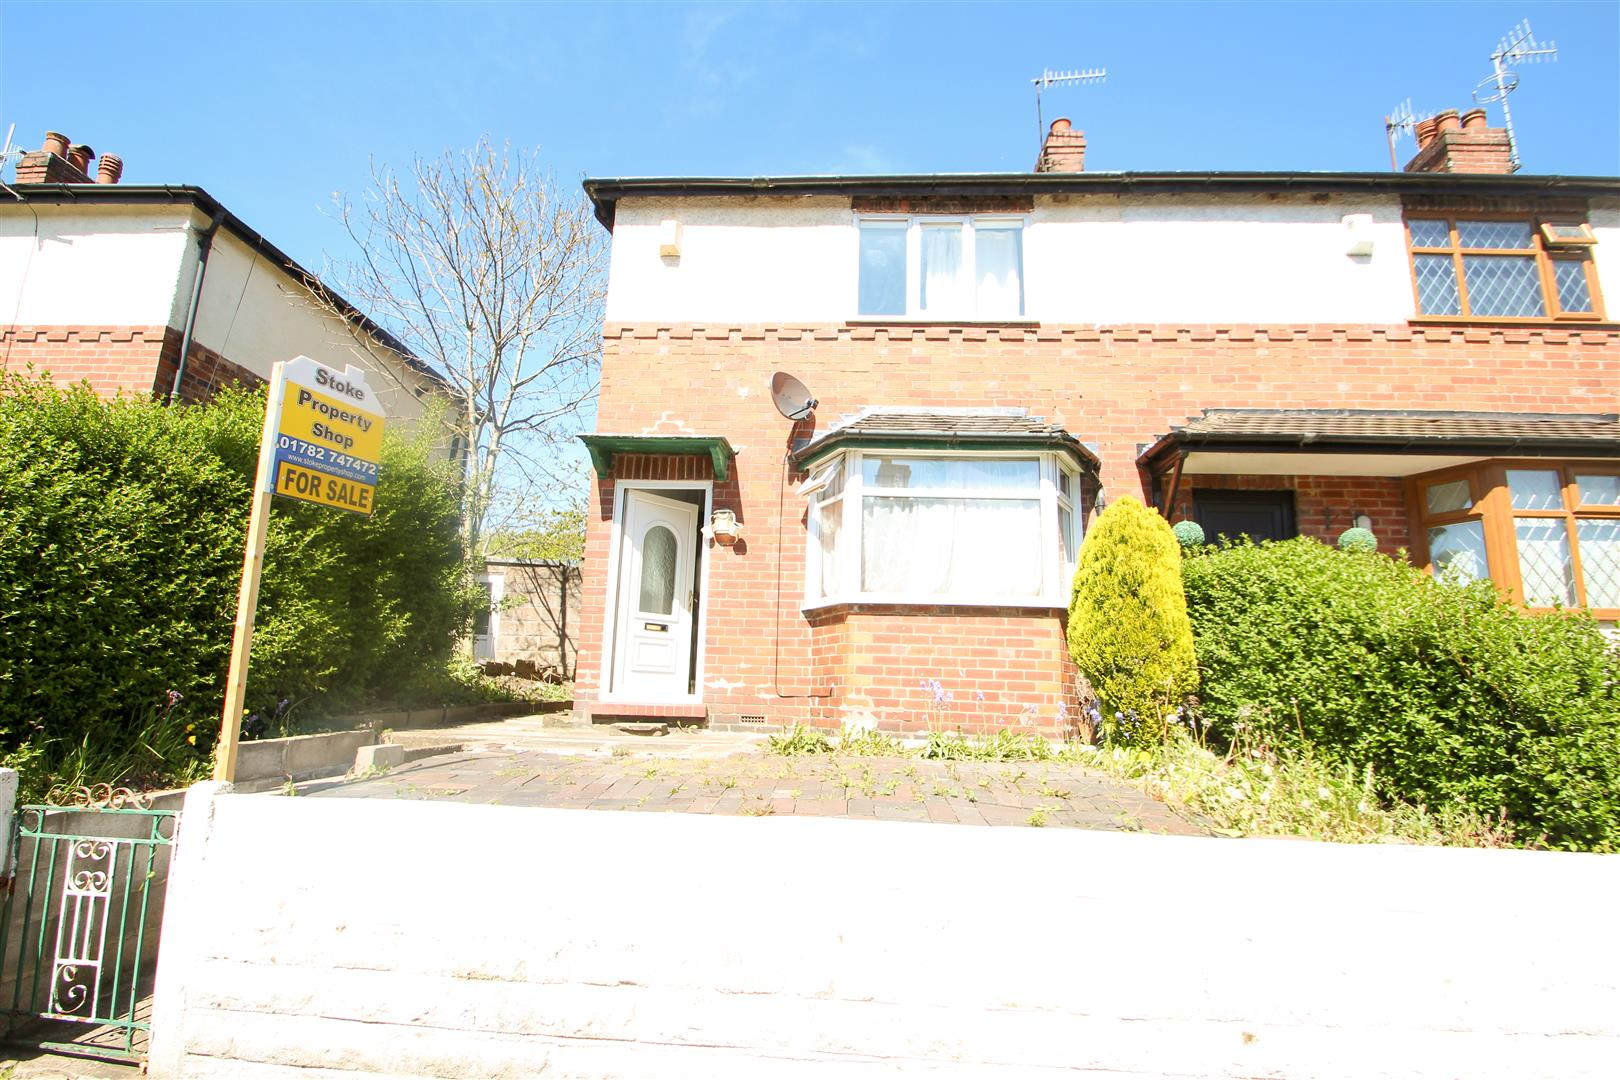 3 Bedroom Houses For Sale In Stoke On Trent 2 Town